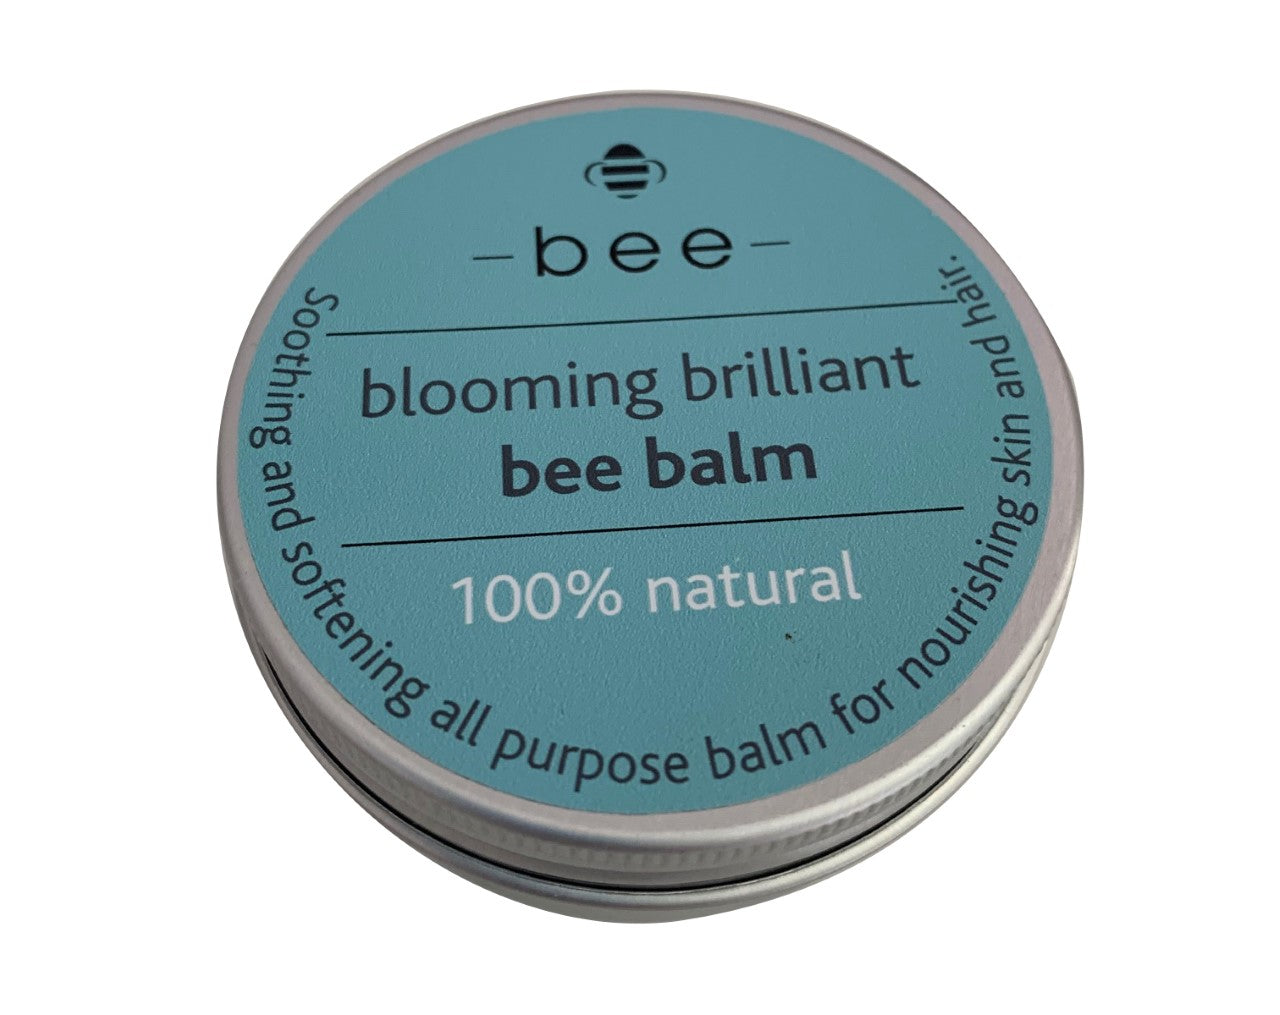 blooming brilliant bee balm